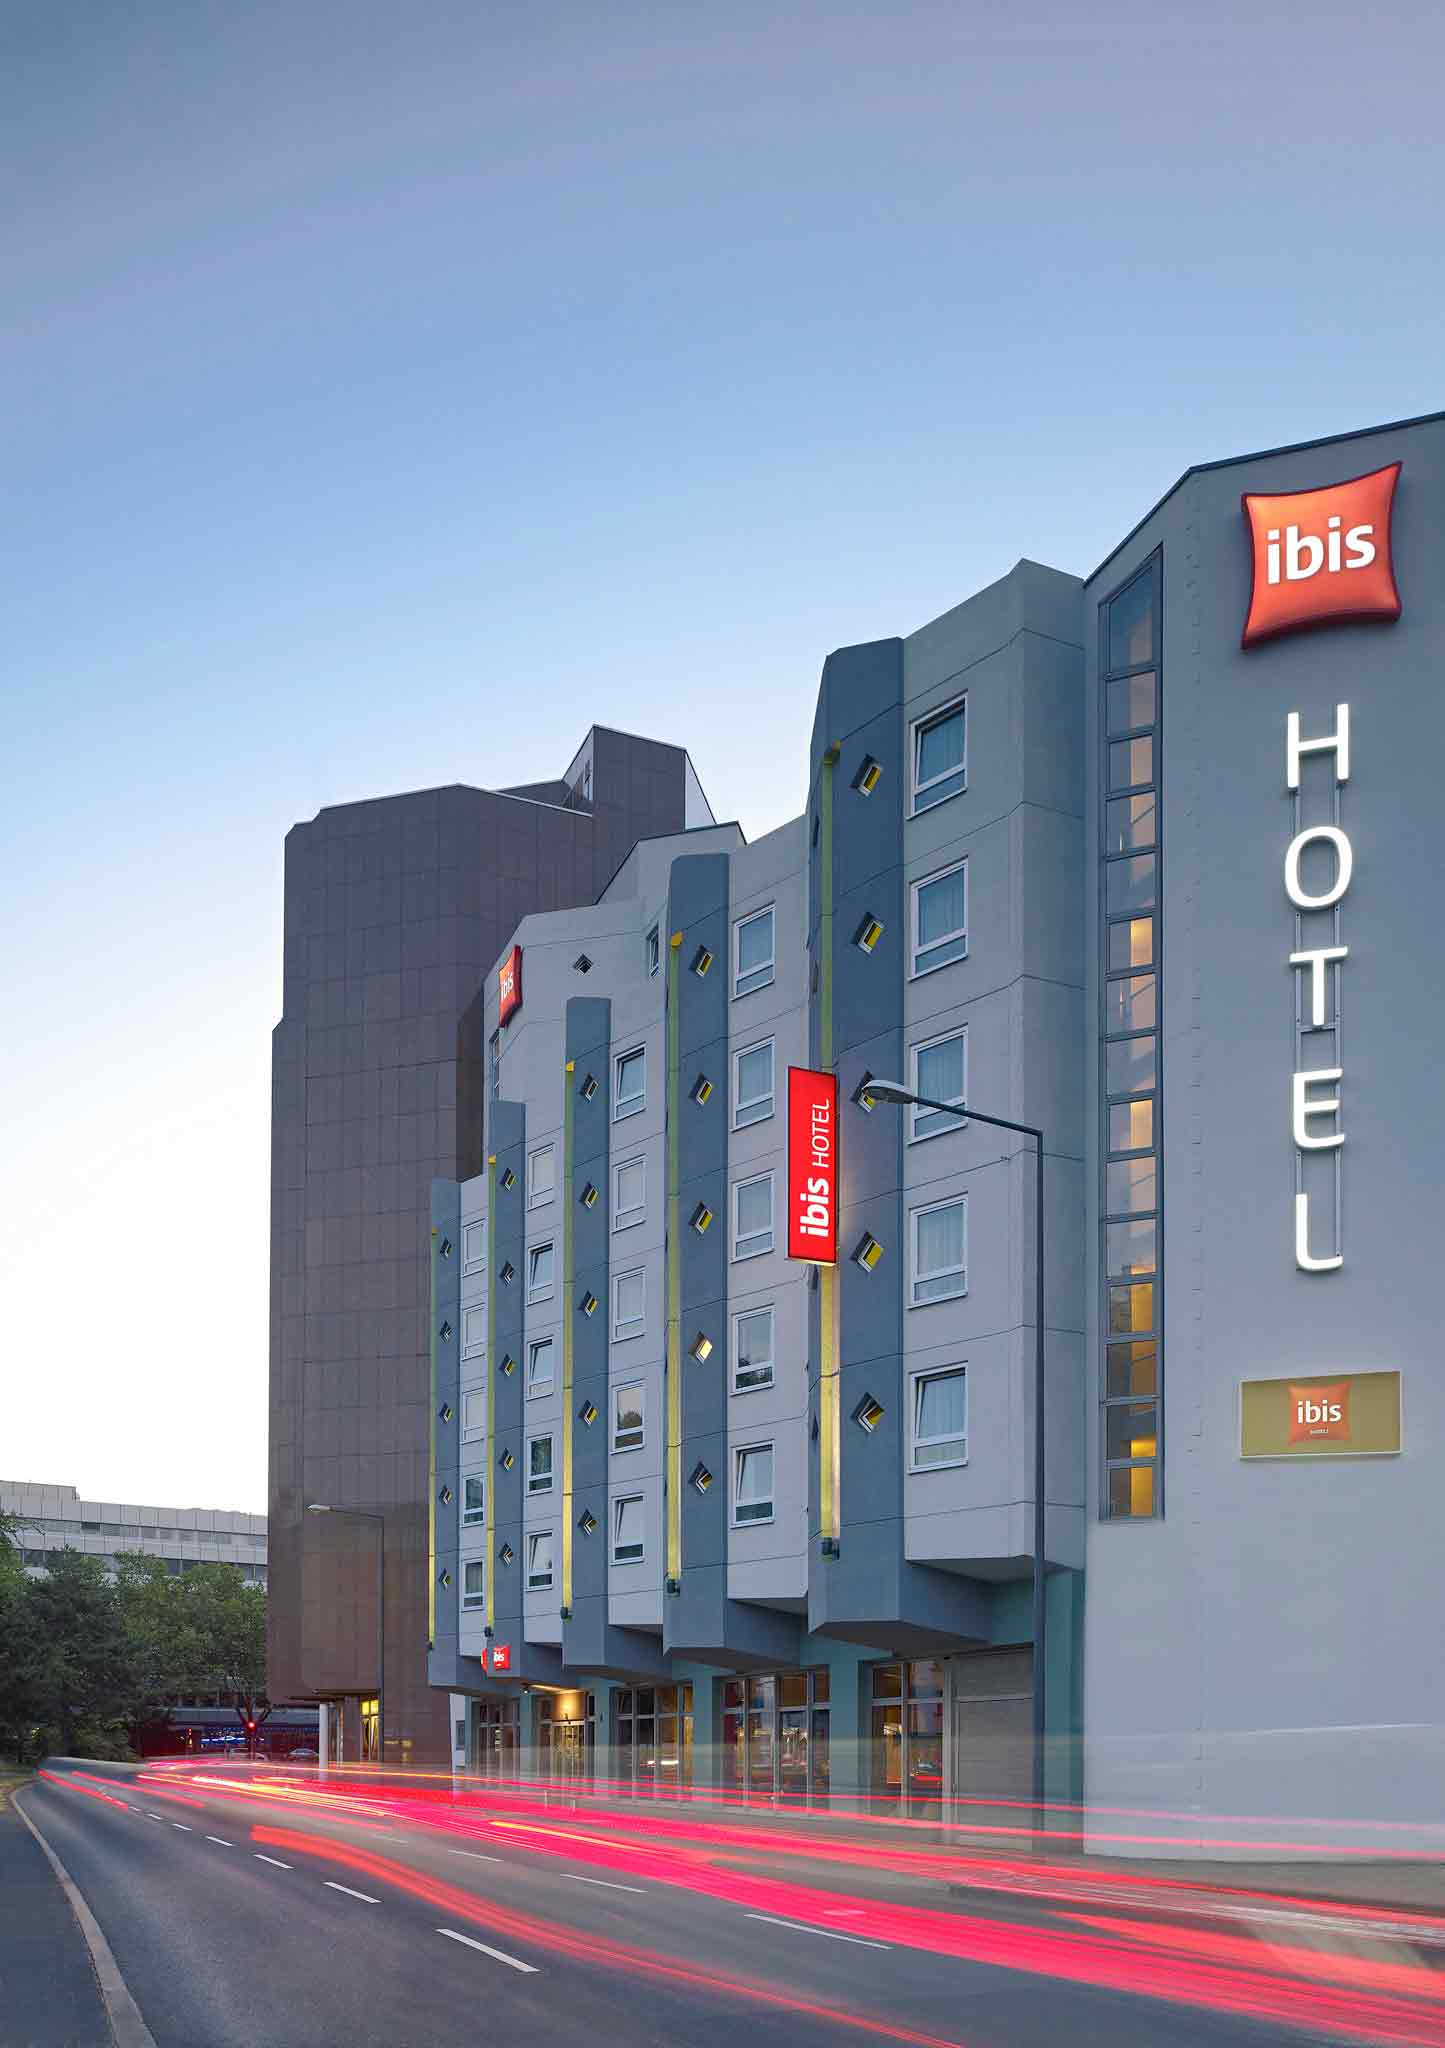 Adagio Koln City Aparthotel Hotel Ibis Cologne Centrum Book Your Hotel In Cologne Now